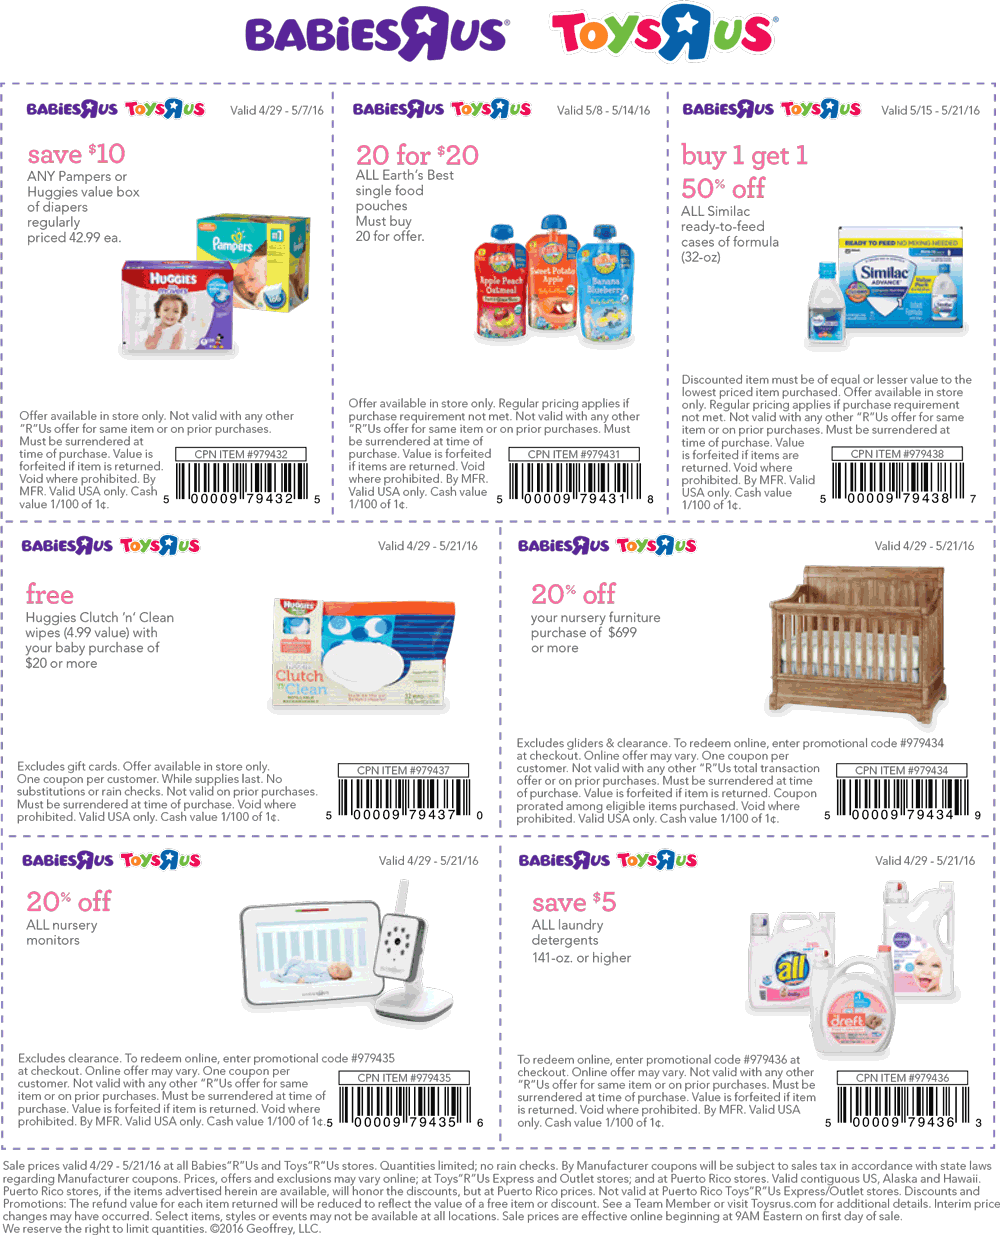 Babies R Us Coupon January 2018 $10 off big box of diapers & more at Toys R Us & Babies R Us